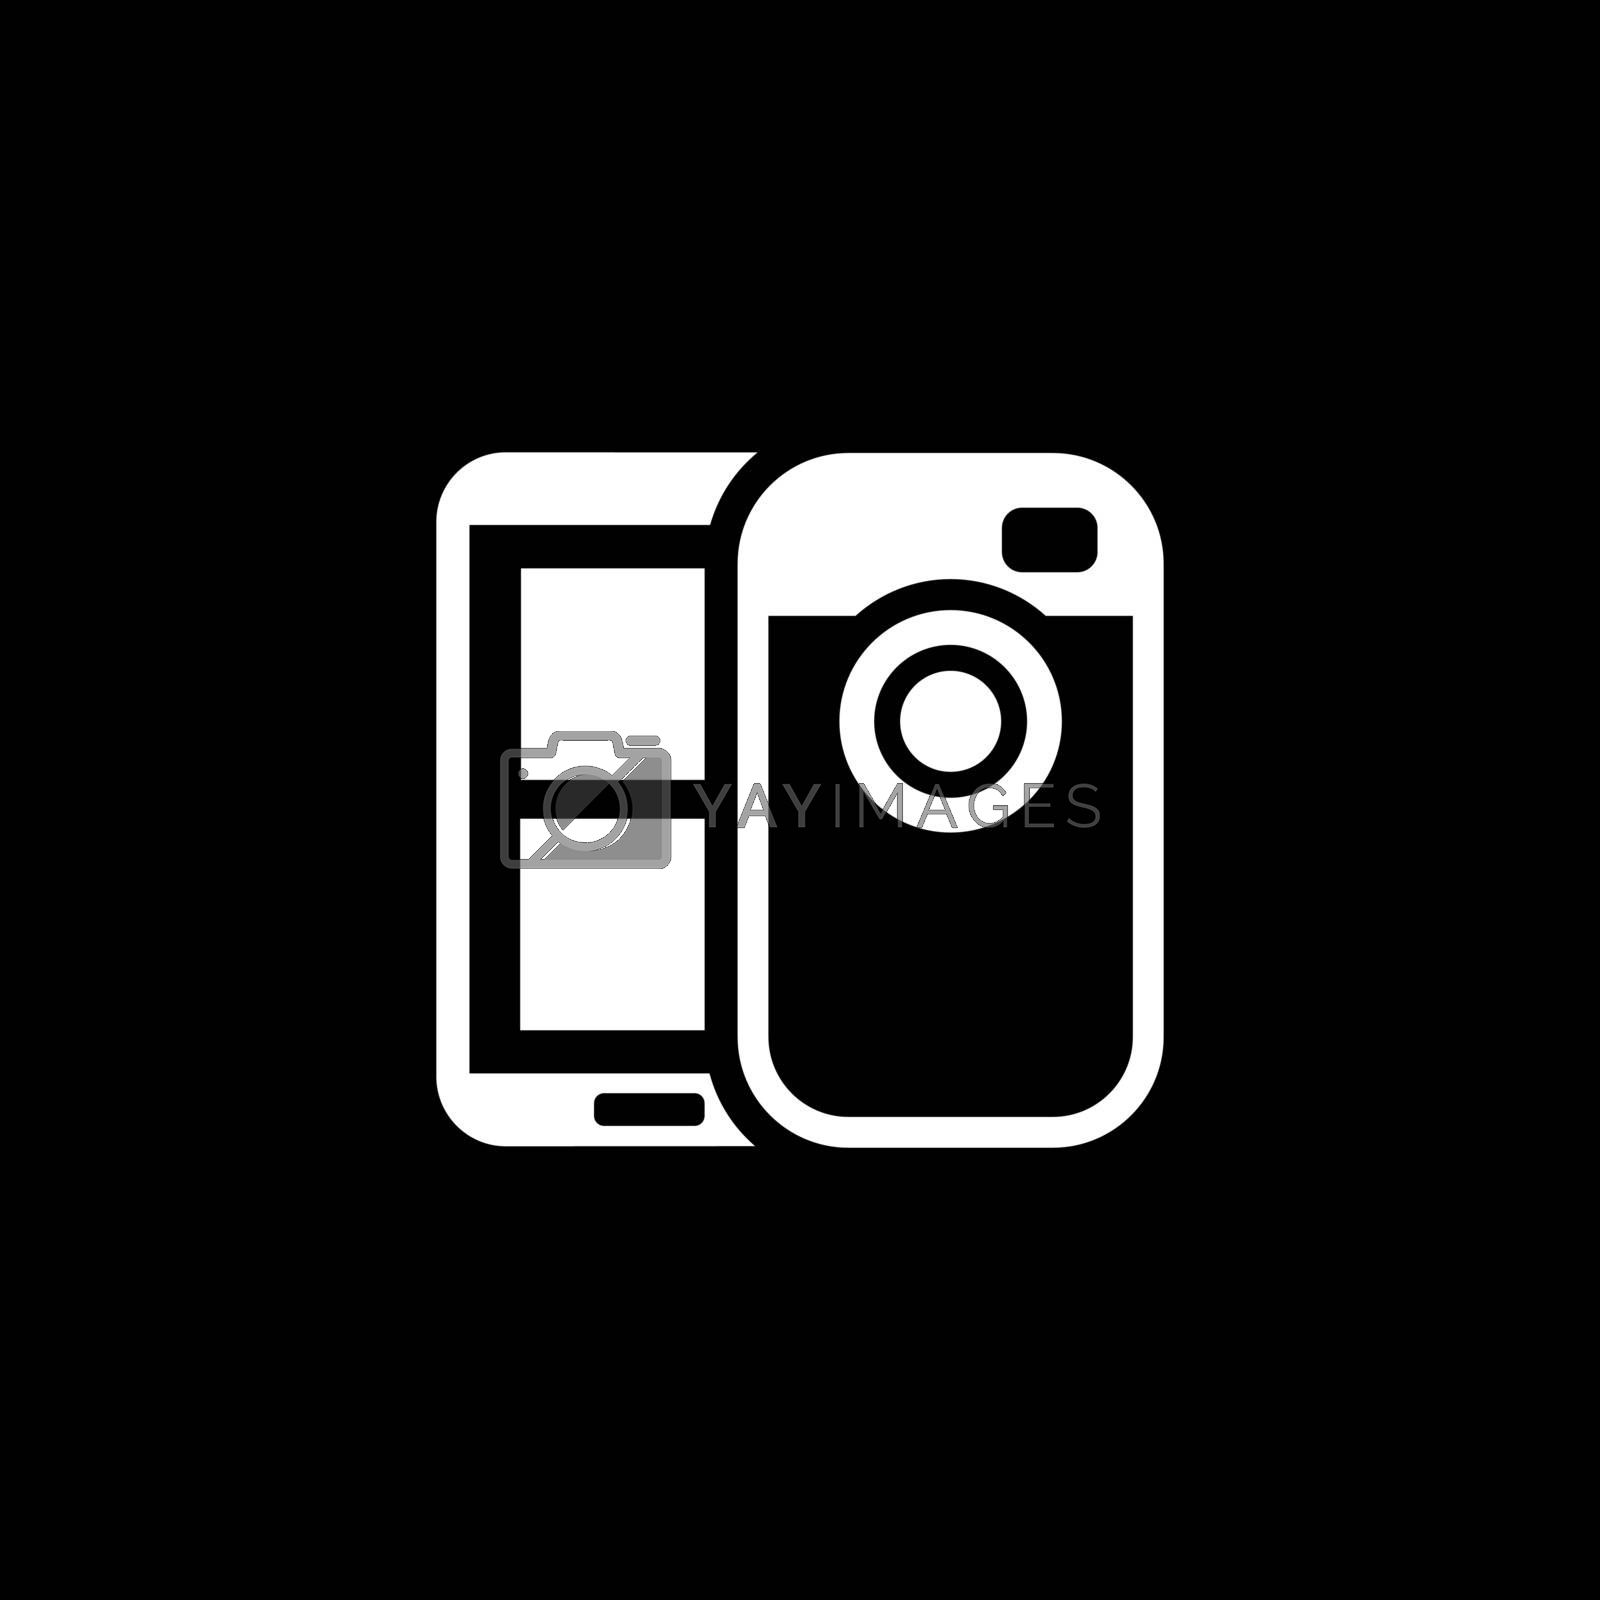 Mobile Photo Blogging Icon. Flat Design. Mobile Devices and Services Concept. Isolated Illustration.